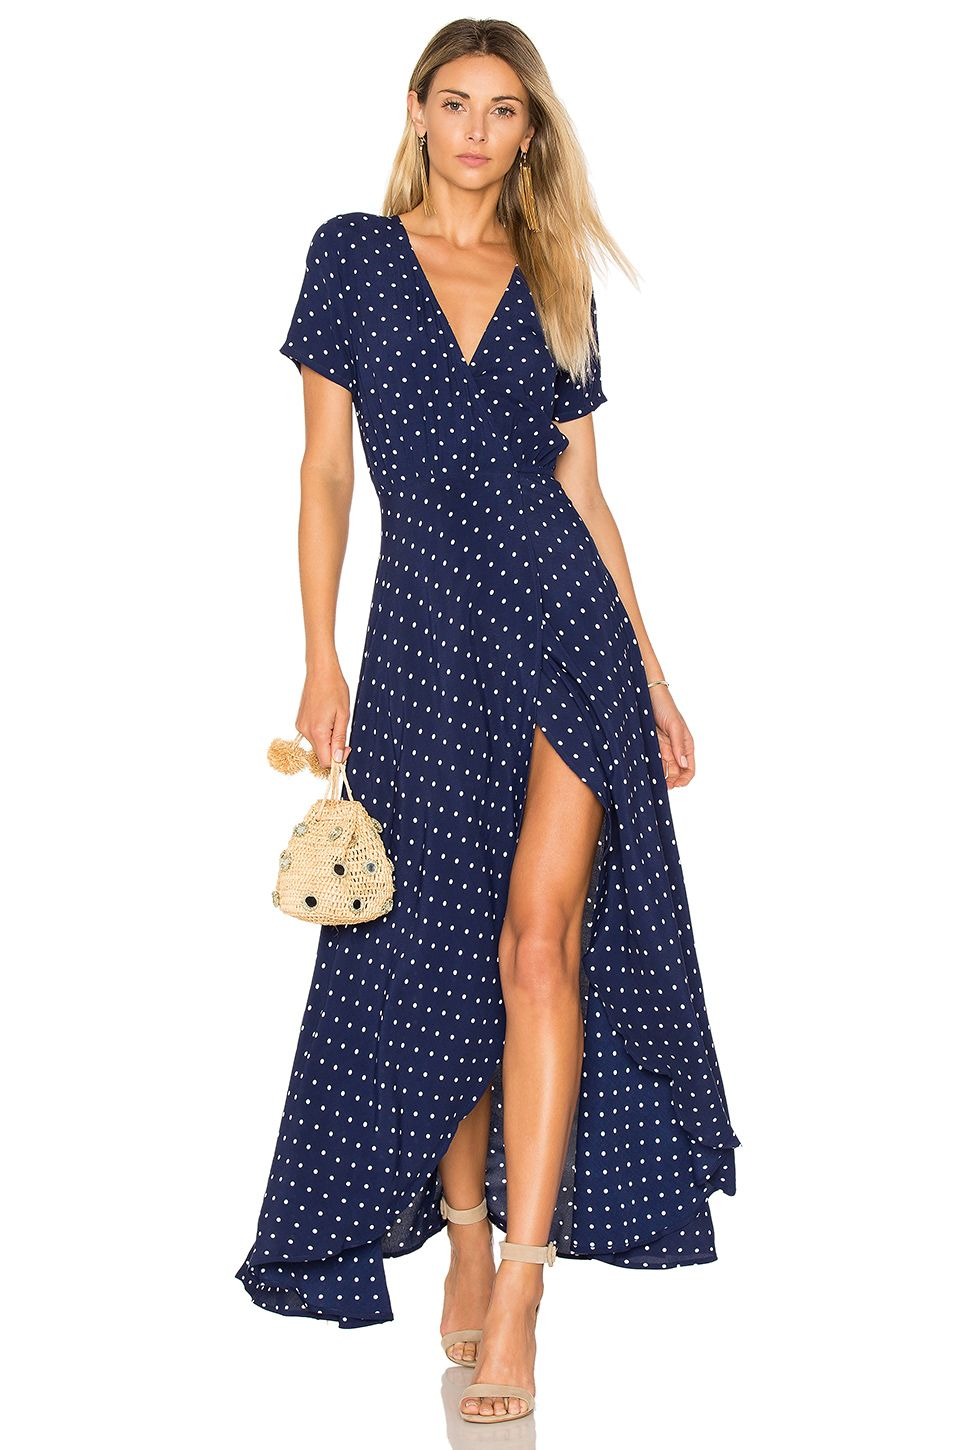 9d736d127c4a AUGUSTE Lily Wrap Maxi Dress Classic Polka Dot in Navy Blue | Polka ...